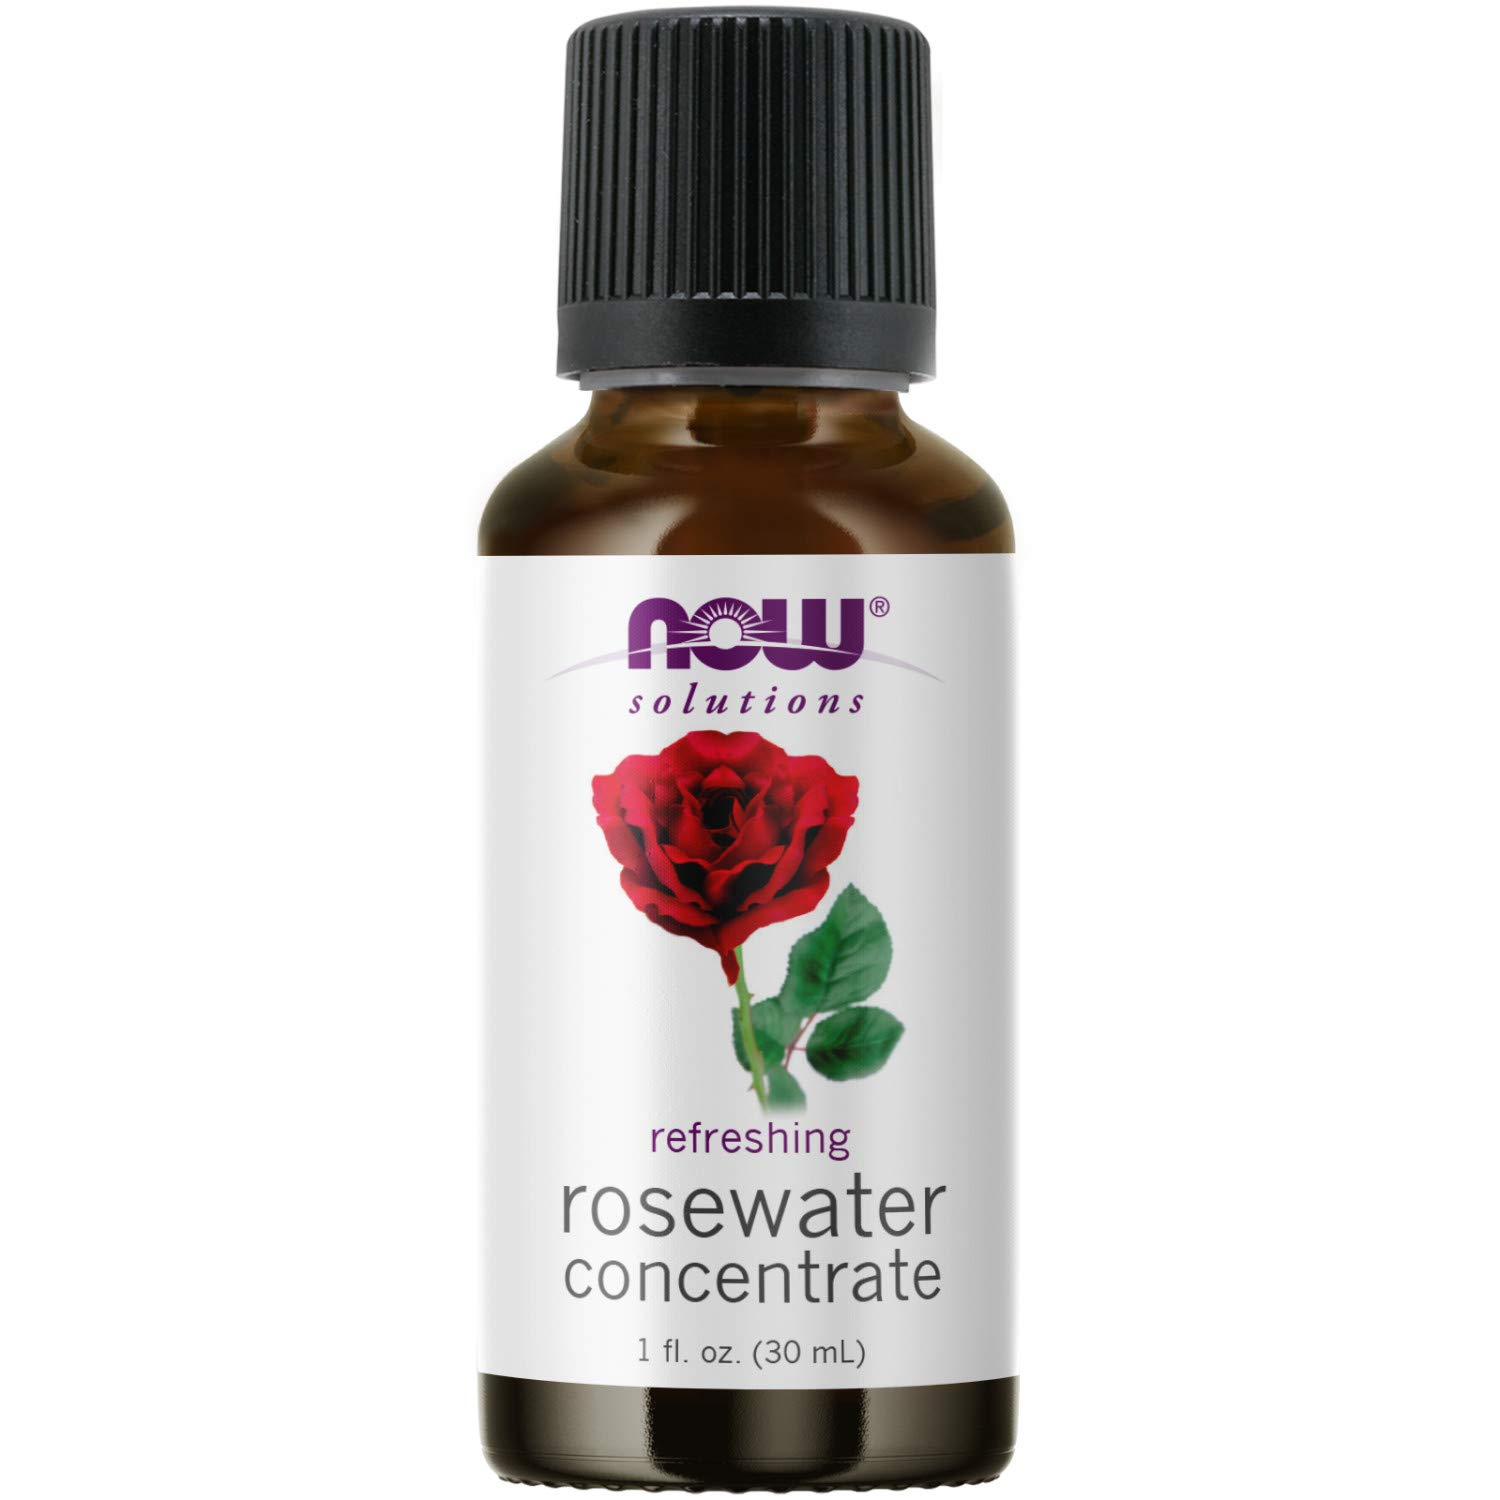 NOW Solutions, Rosewater Concentrate, Refreshing, Multi-Purpose Oil, Potpourri Scent, 1-Ounce